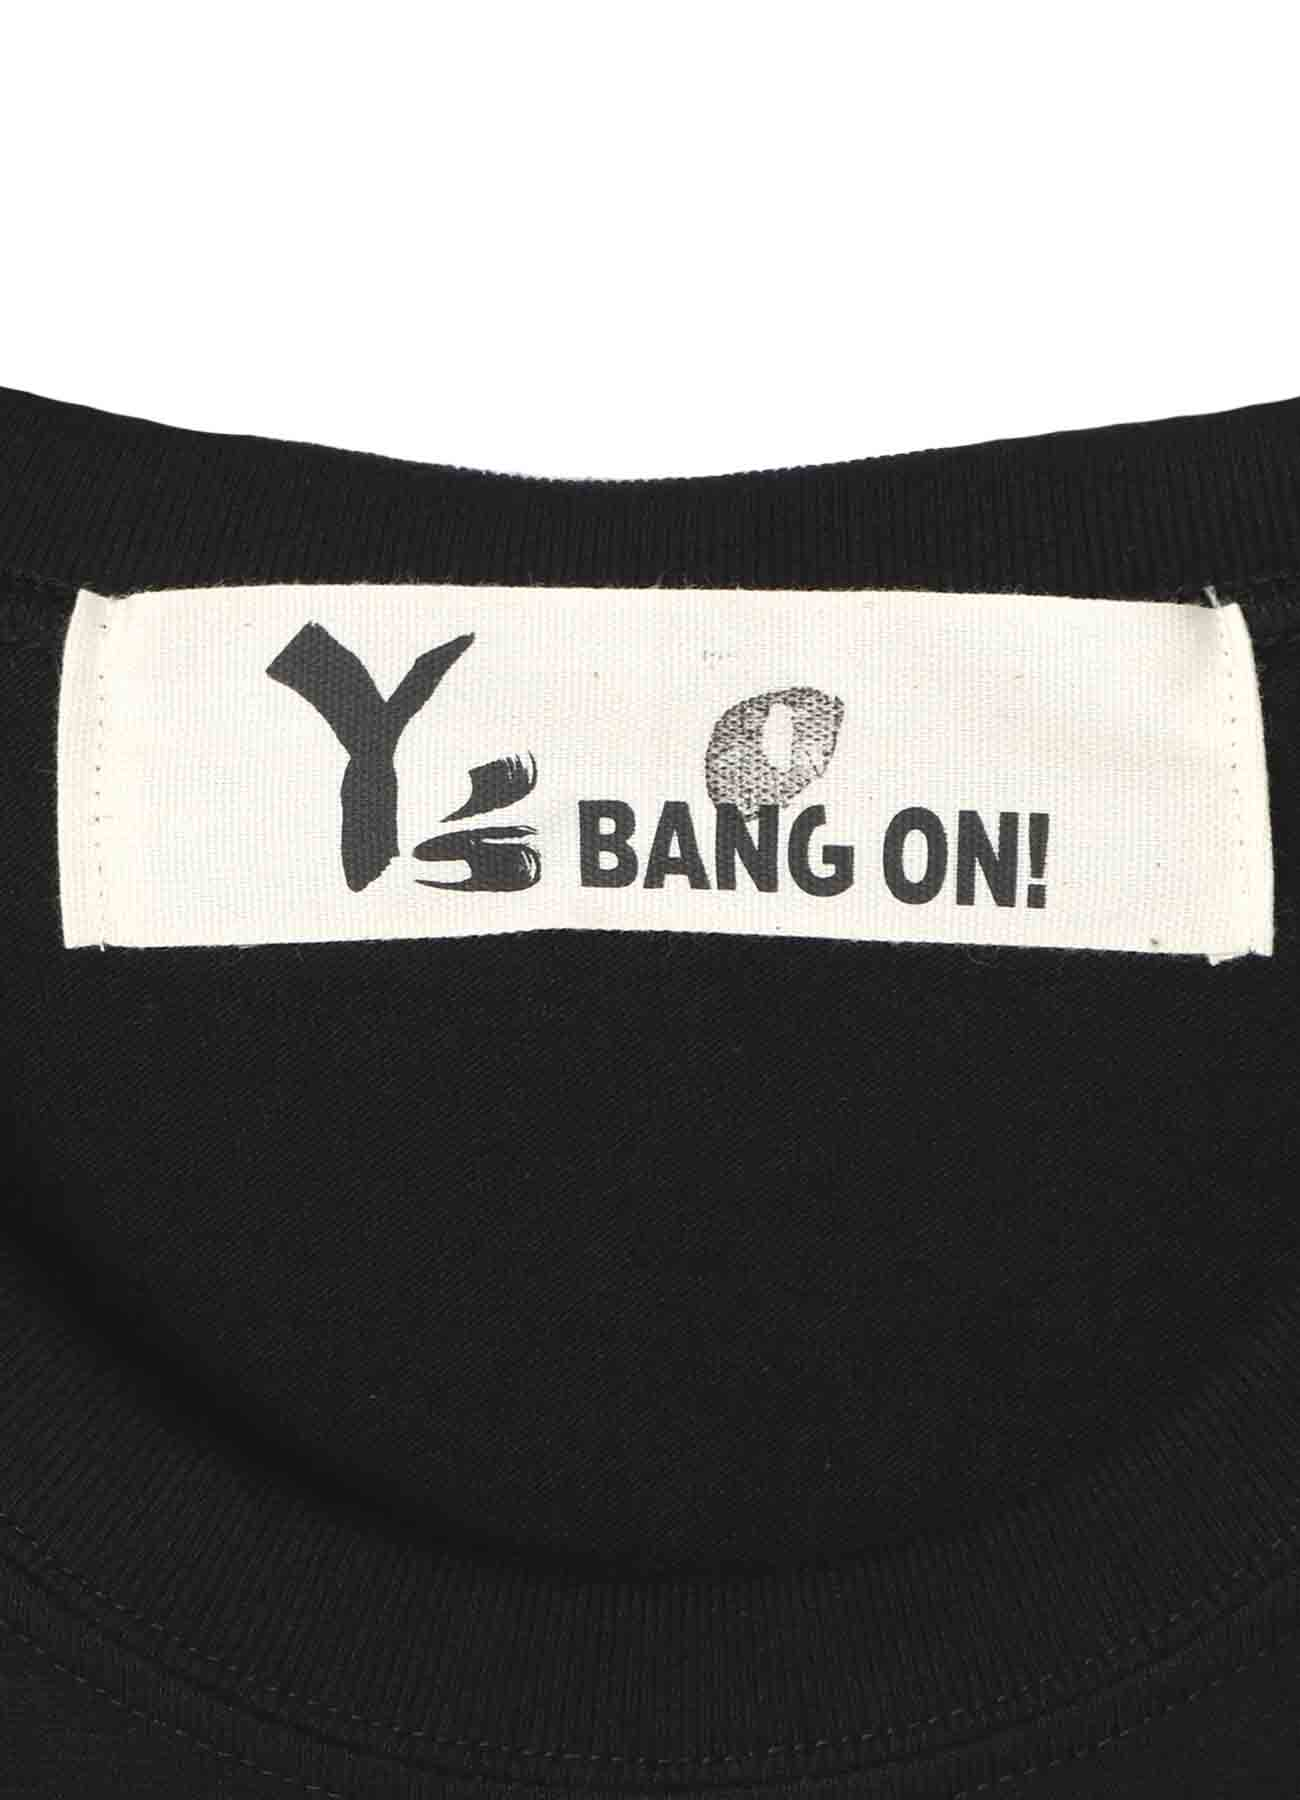 Y's BANG ON!Deca-LOGO T恤金色短袖